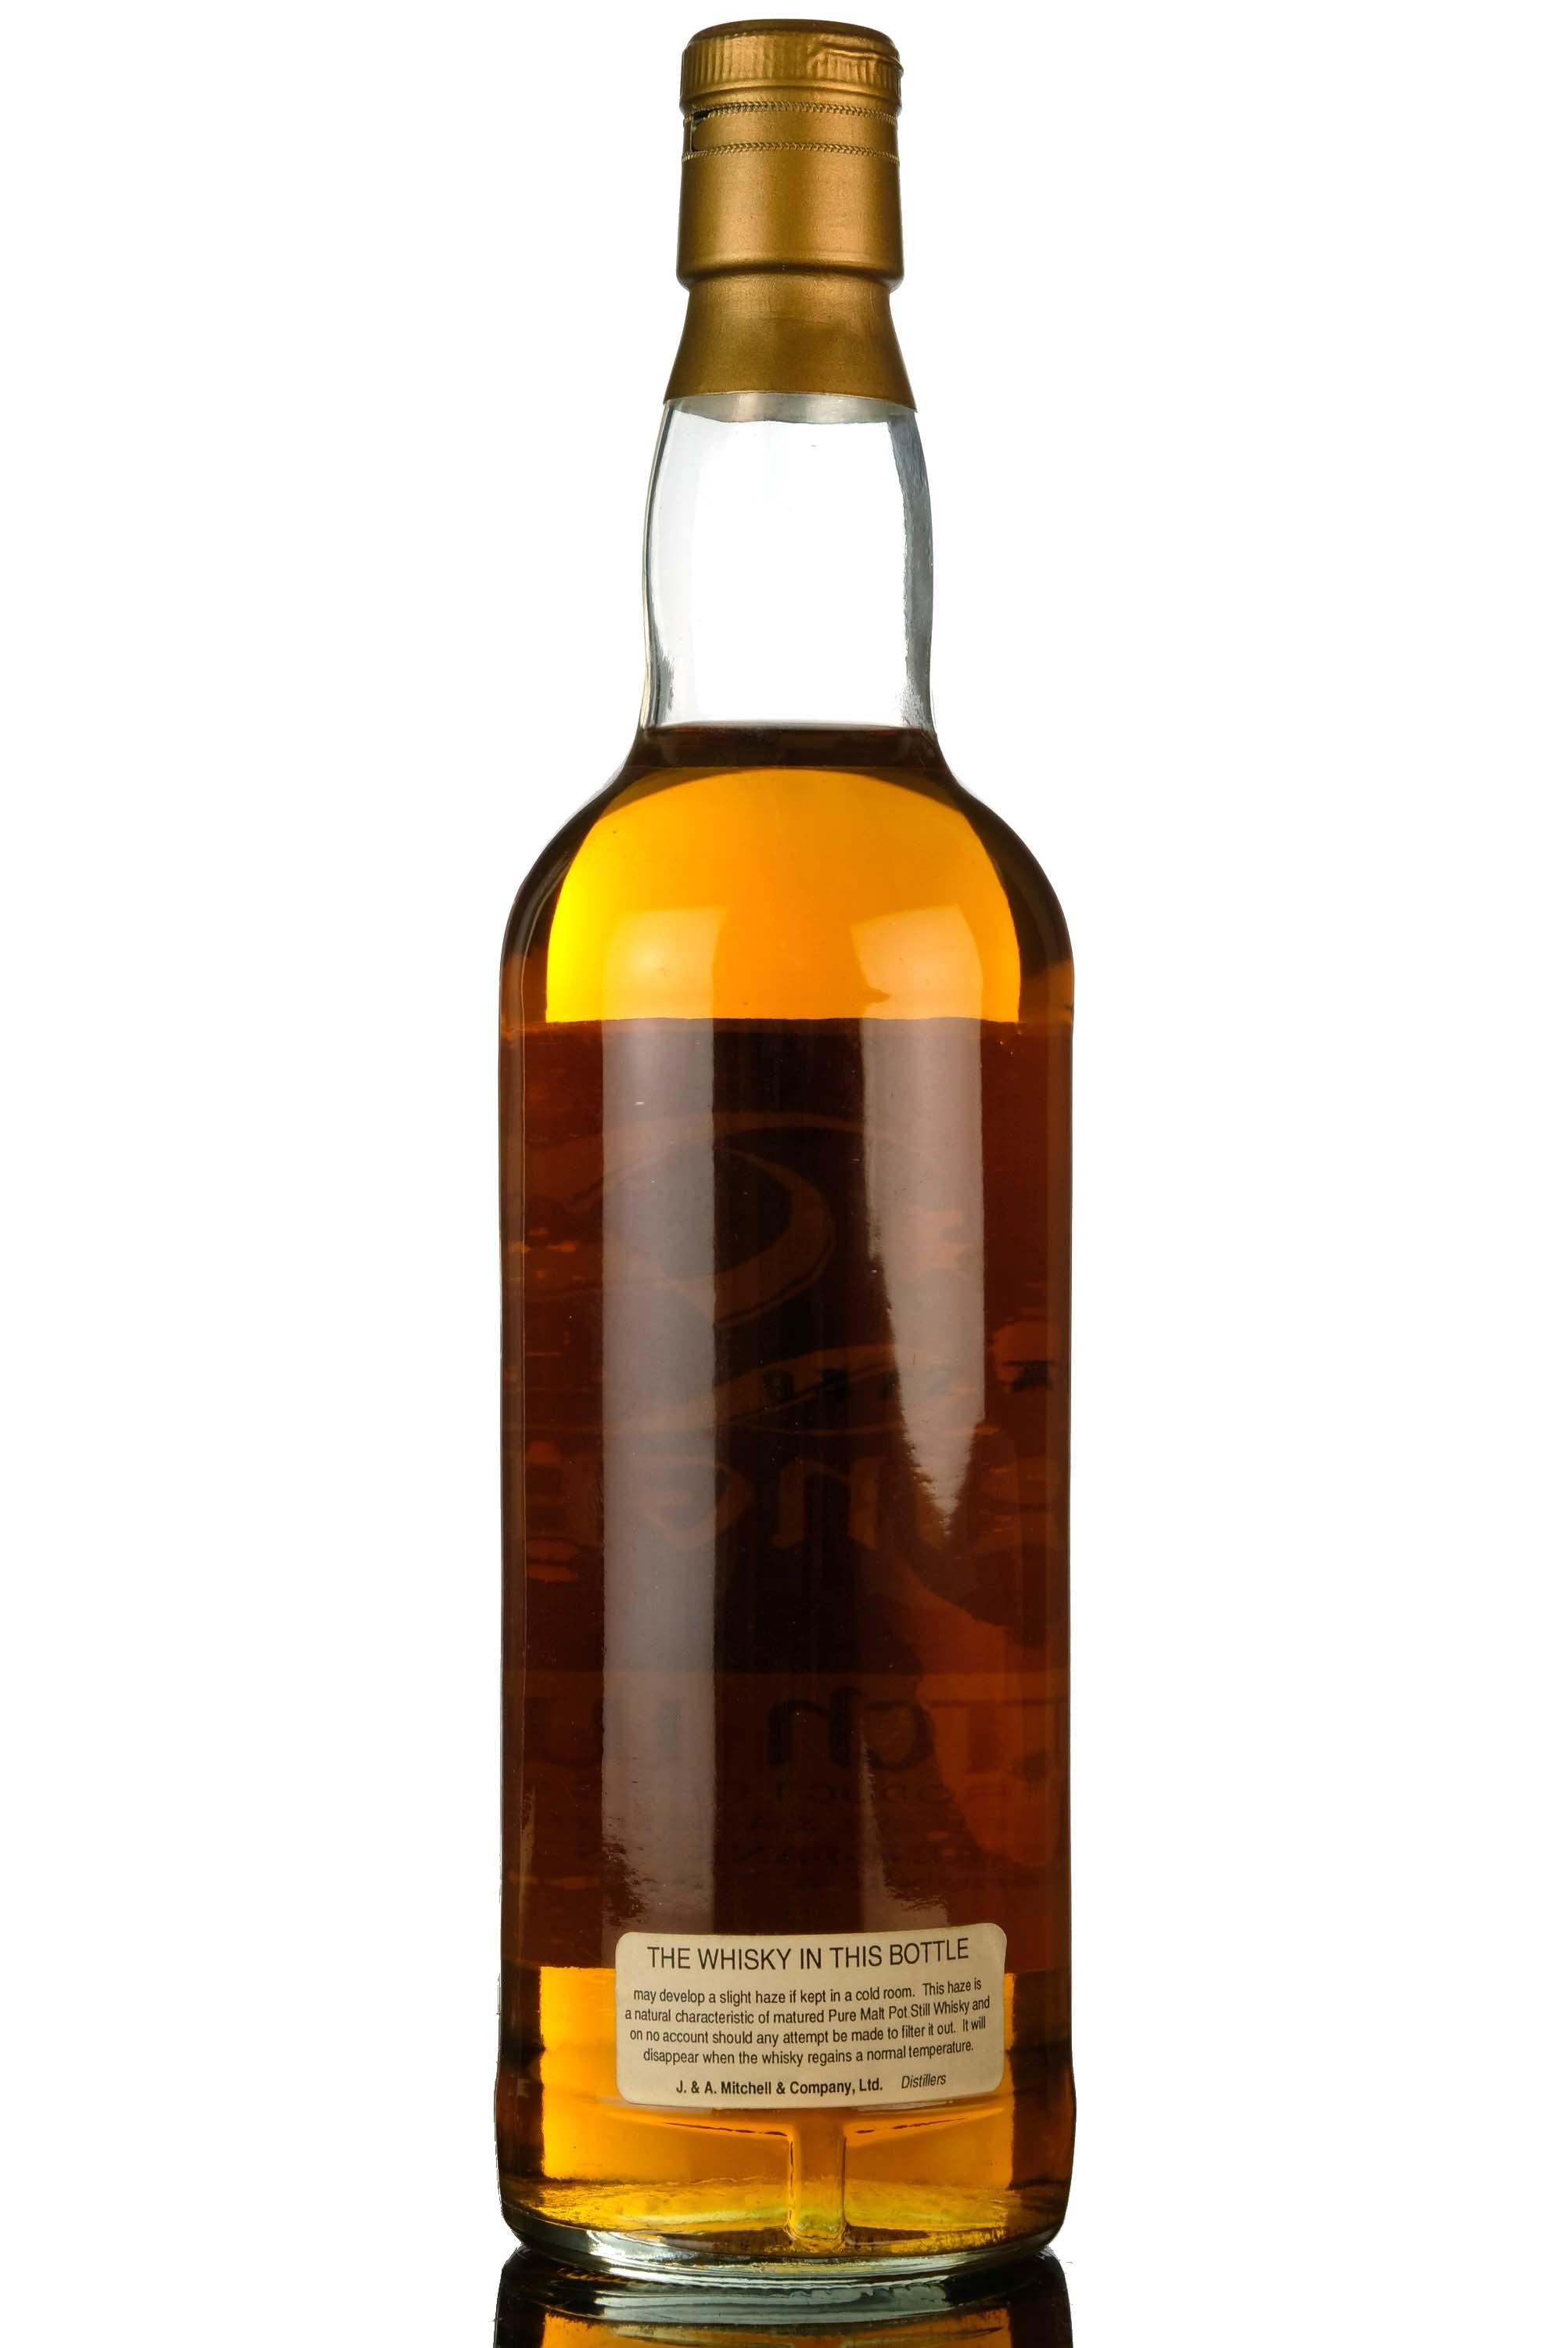 springbank 15 year old - 1990s